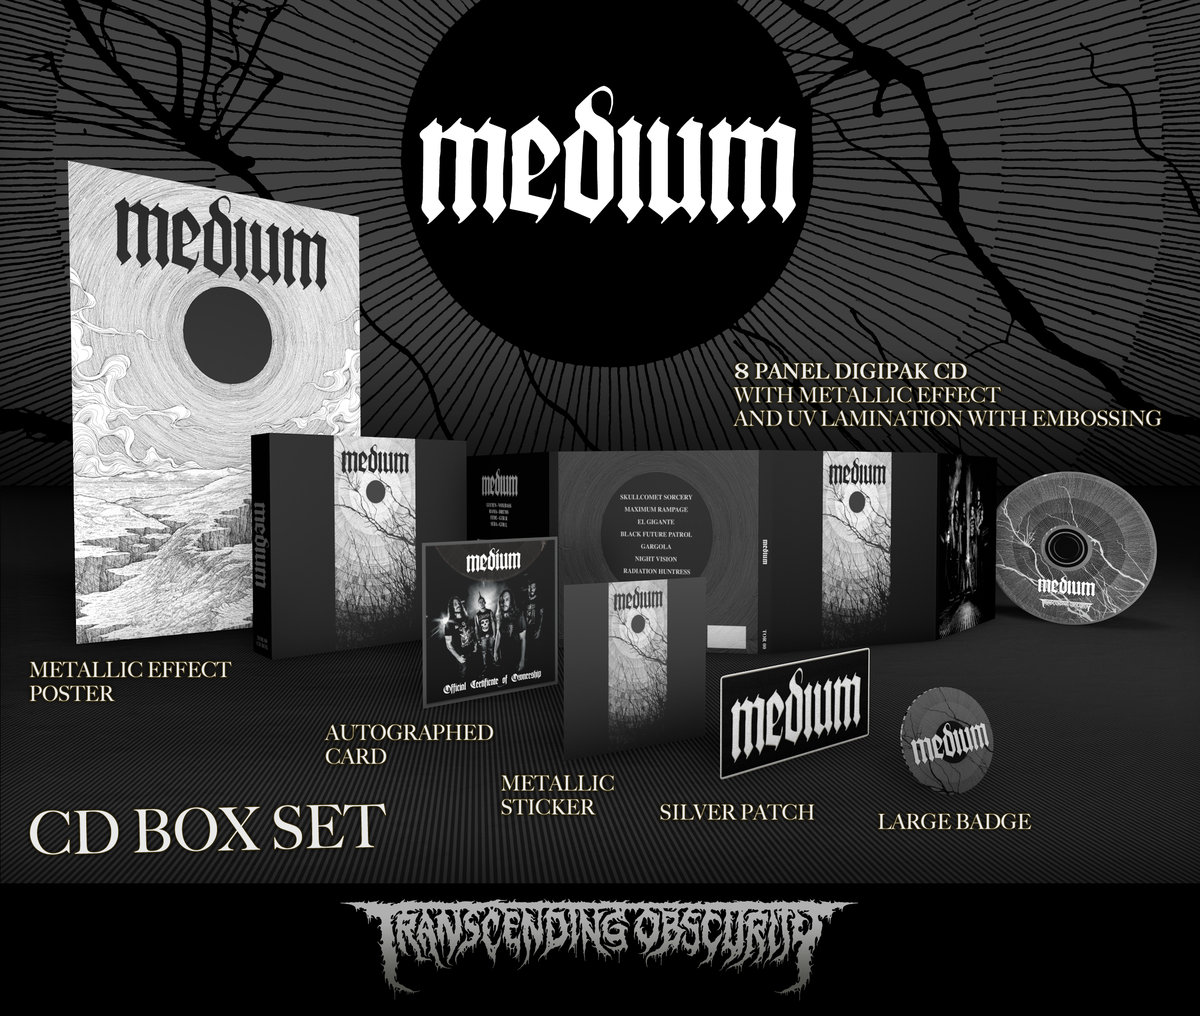 MEDIUM Autographed CD Box Set (Limited to 50)